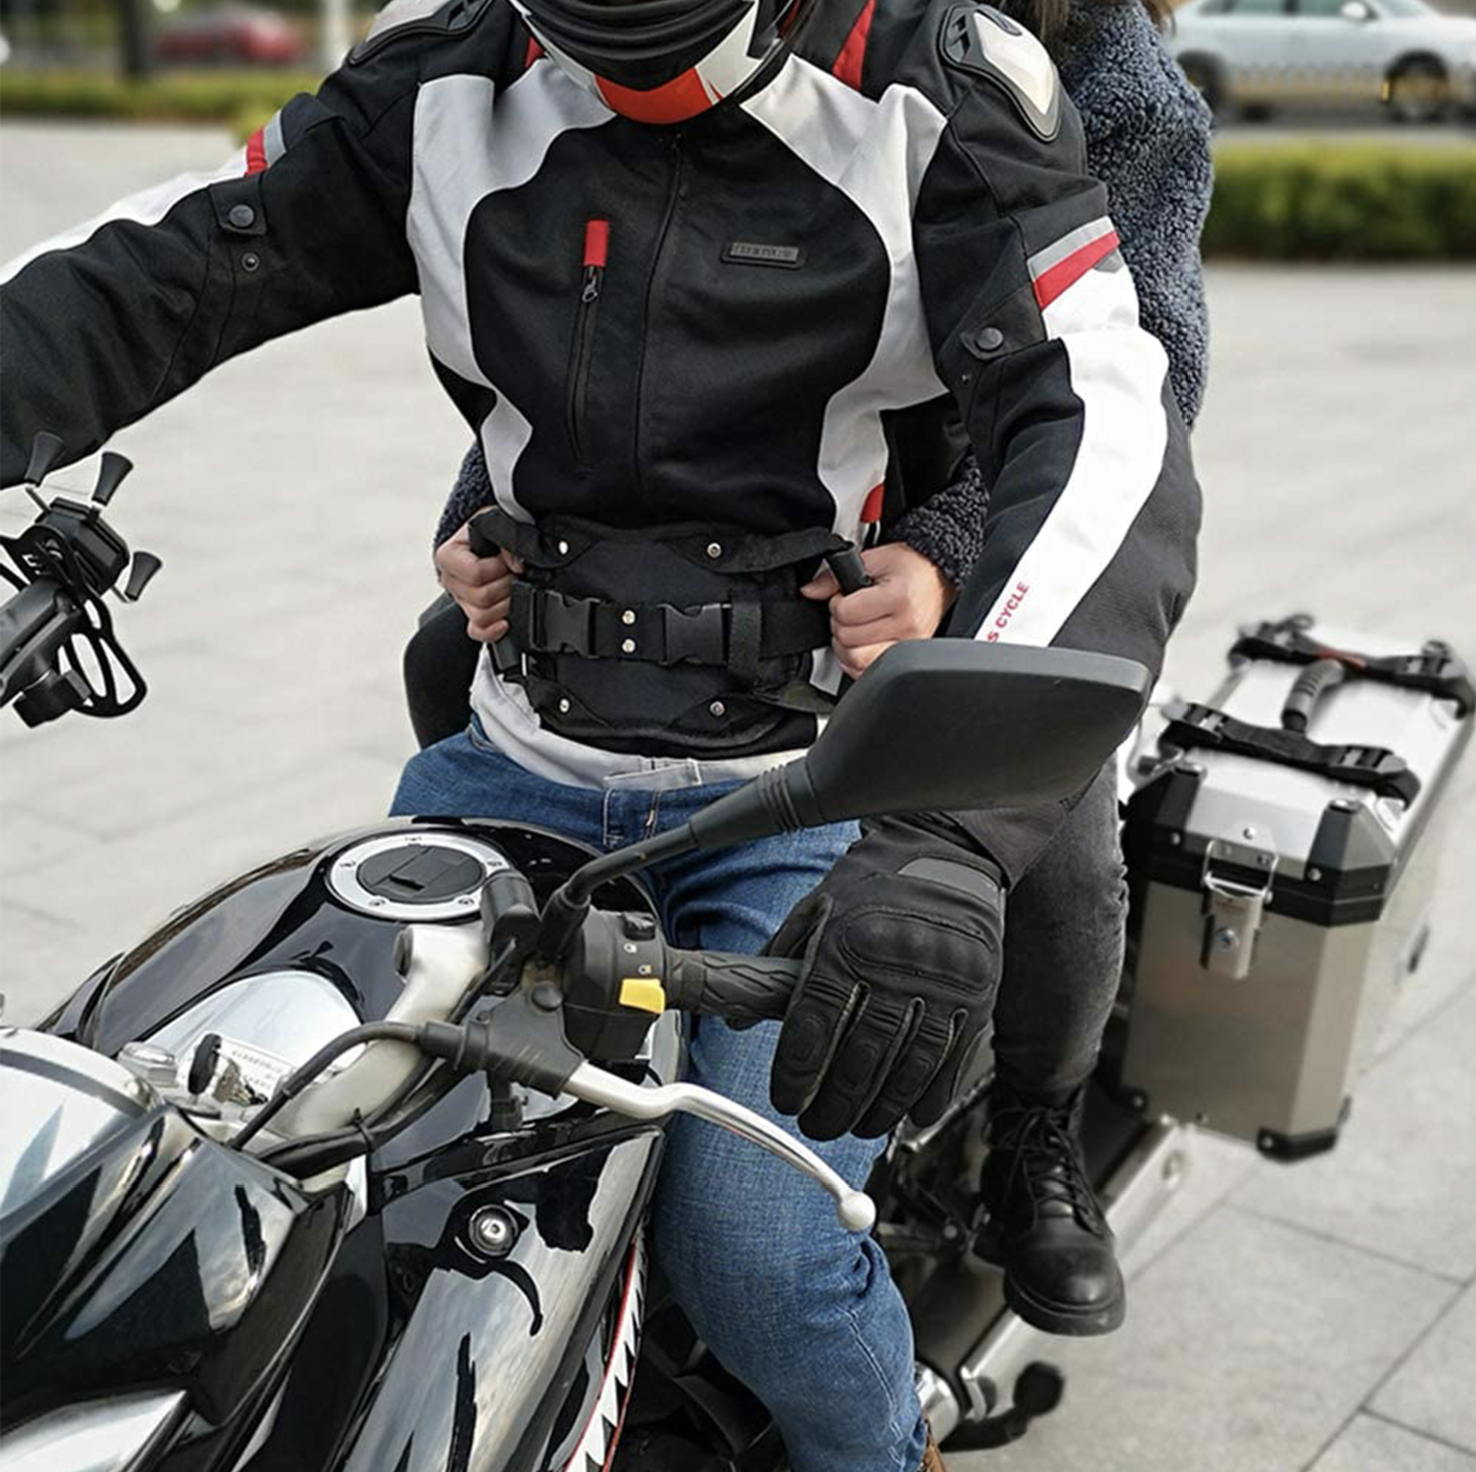 THE MOTORCYCLE PASSENGER SAFETY BELT SYSTEM